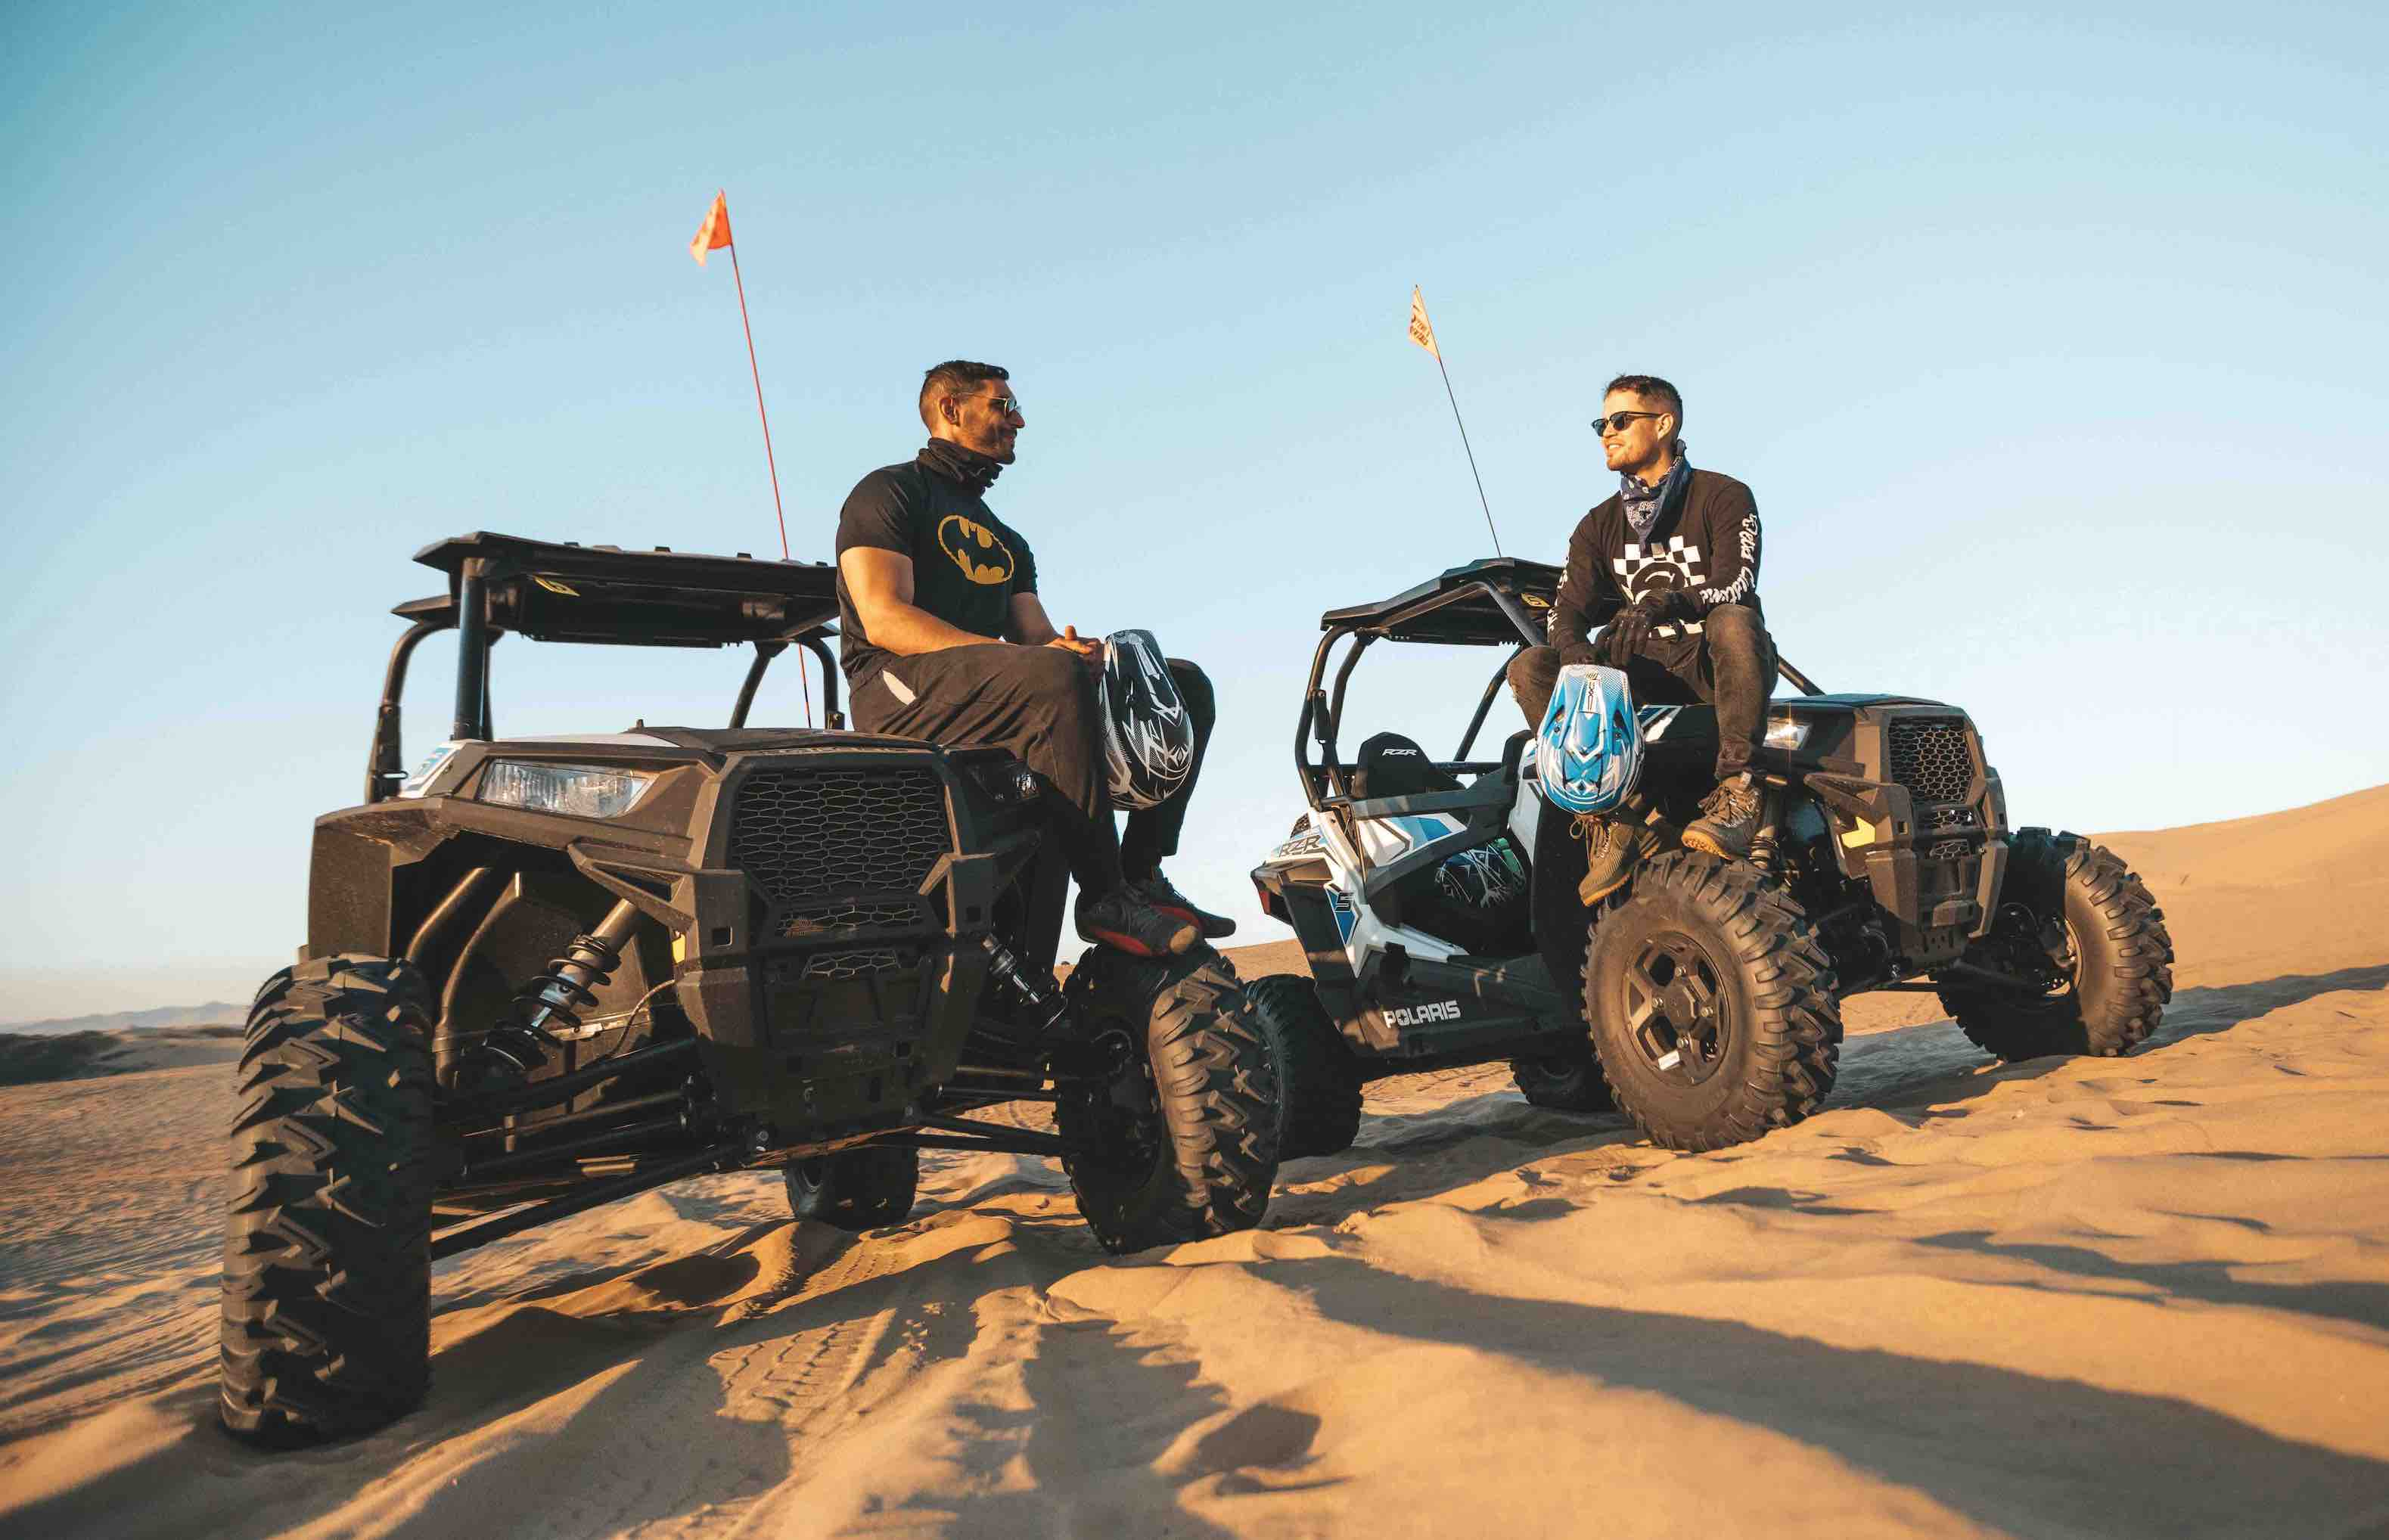 2 dune buggies in the desert with a man sitting on each hood of both buggies.